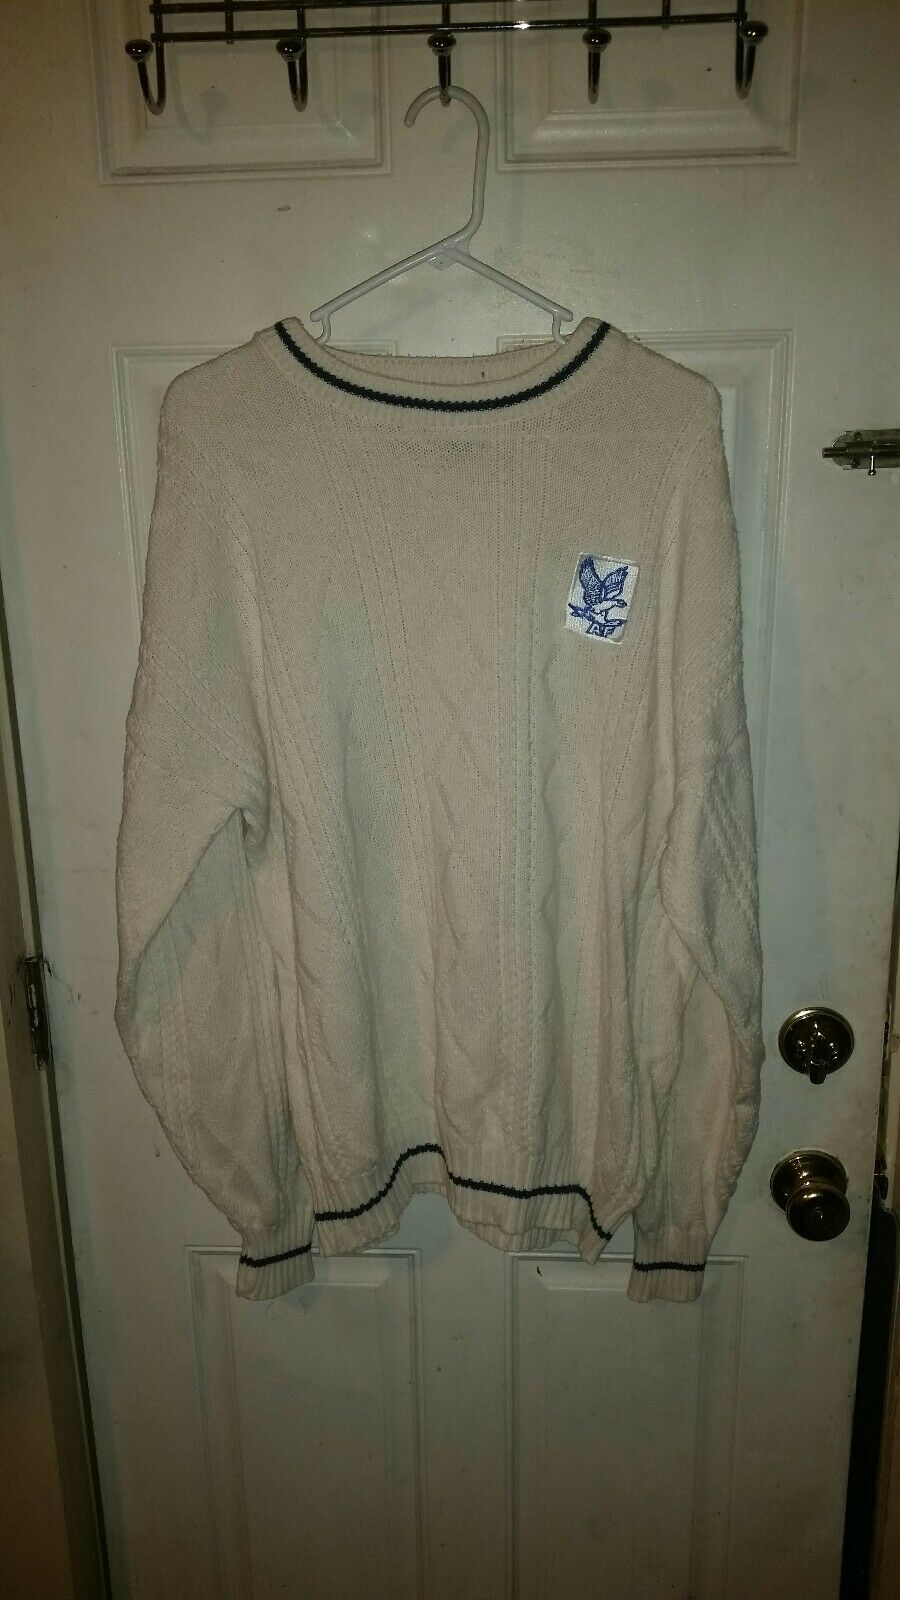 UNITED STATES AIR FORCE ACADEMY FALCONS WHITE SWEATER 100% COTTON LARGE L